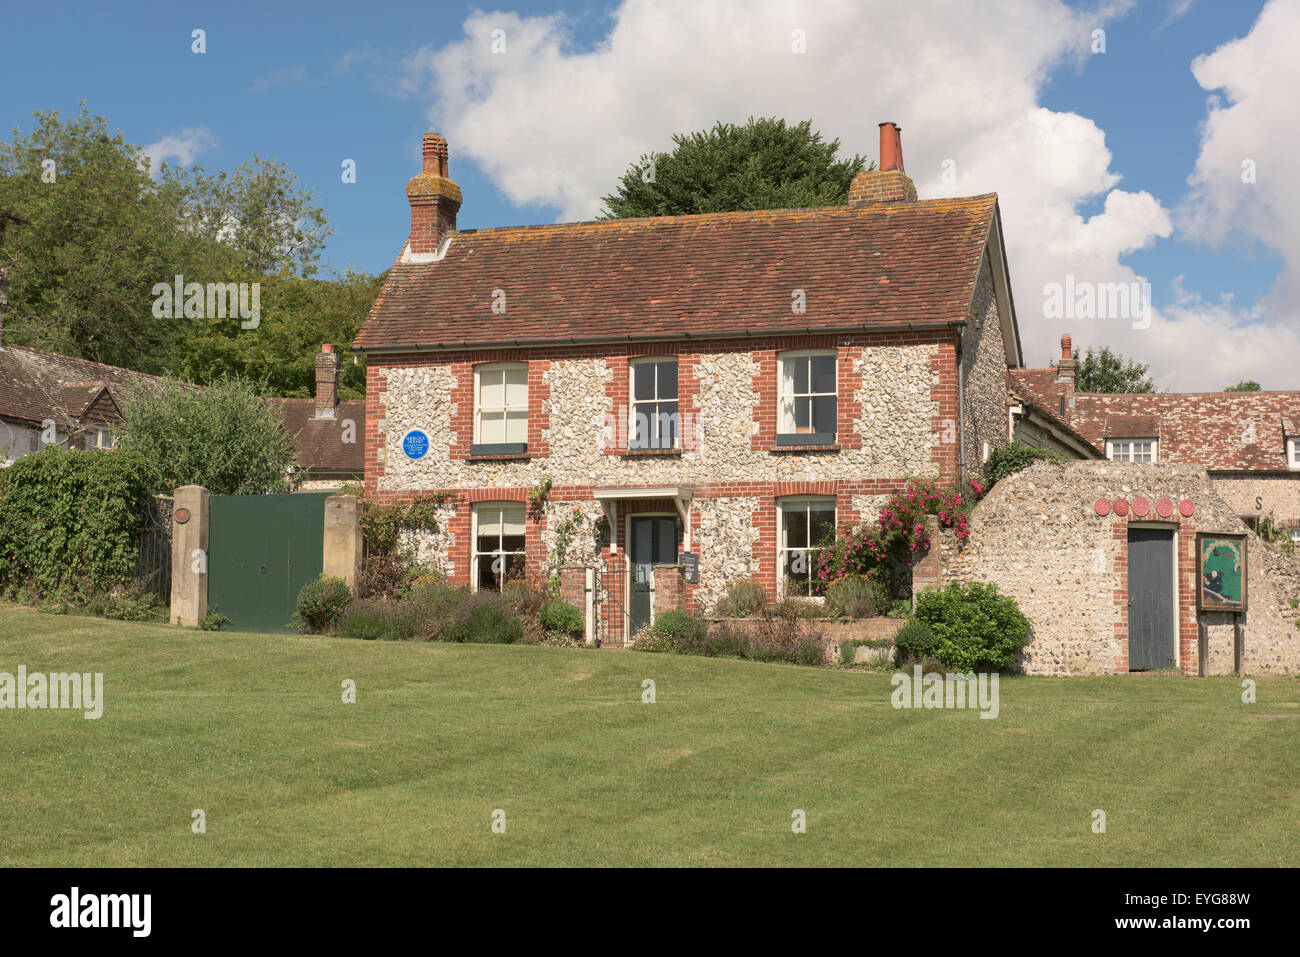 East Dean, Sussex, Building with plaque that says that this was where the fictional detective Sherlock Holmes lived - Stock Image